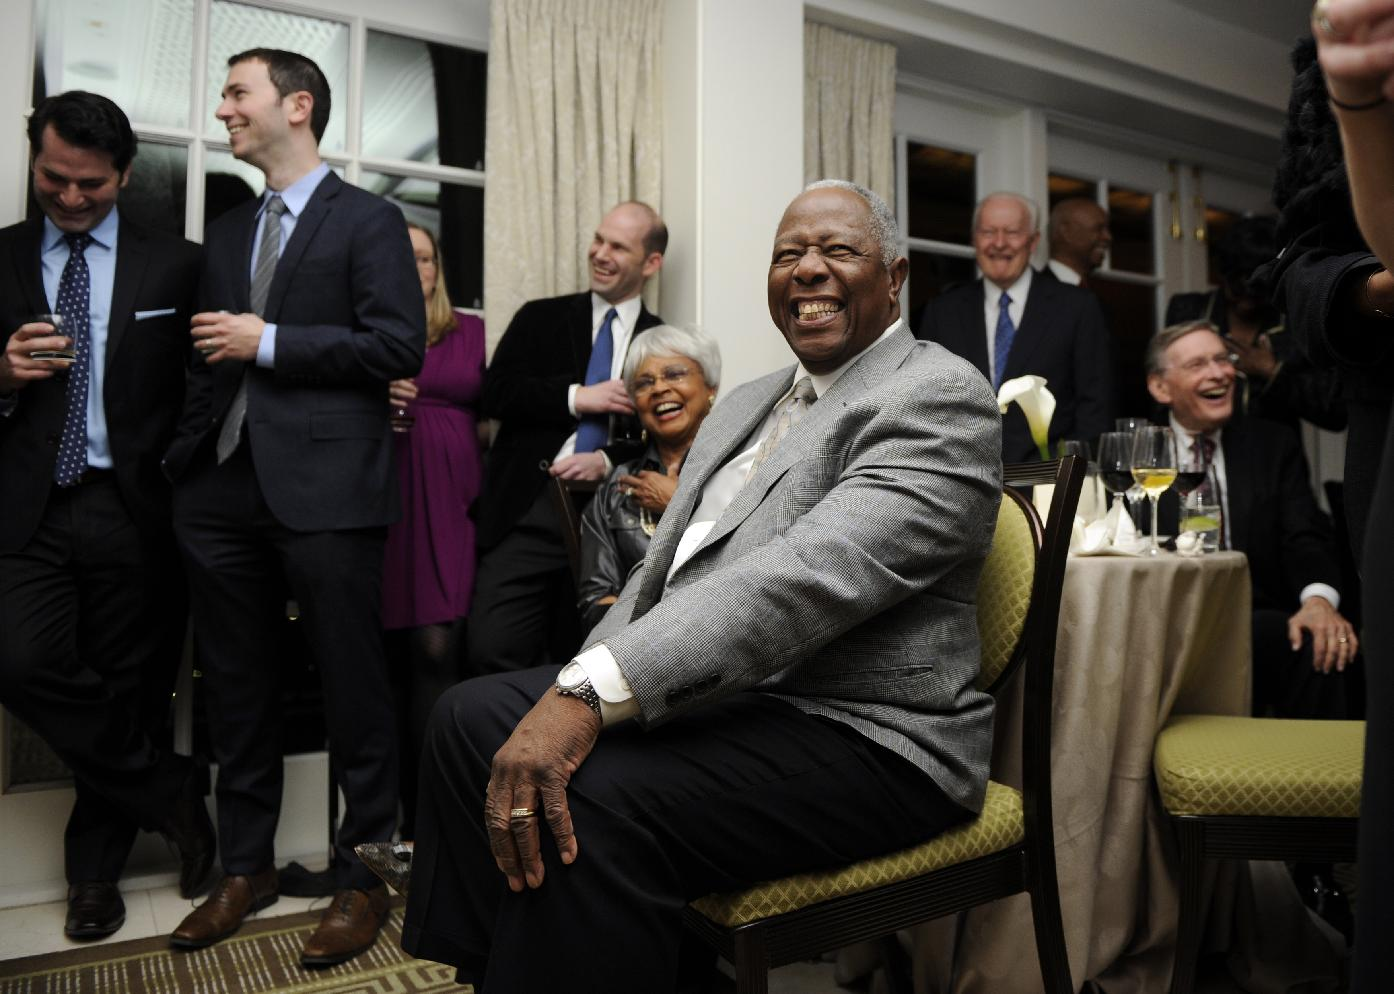 Baseball Hall of Famer Hank Aaron, center, smiles during a reception in his honor, Friday, Feb. 7, 2014, in Washington. Aaron turned 80 this week and is being celebrated with a series of events in Washington